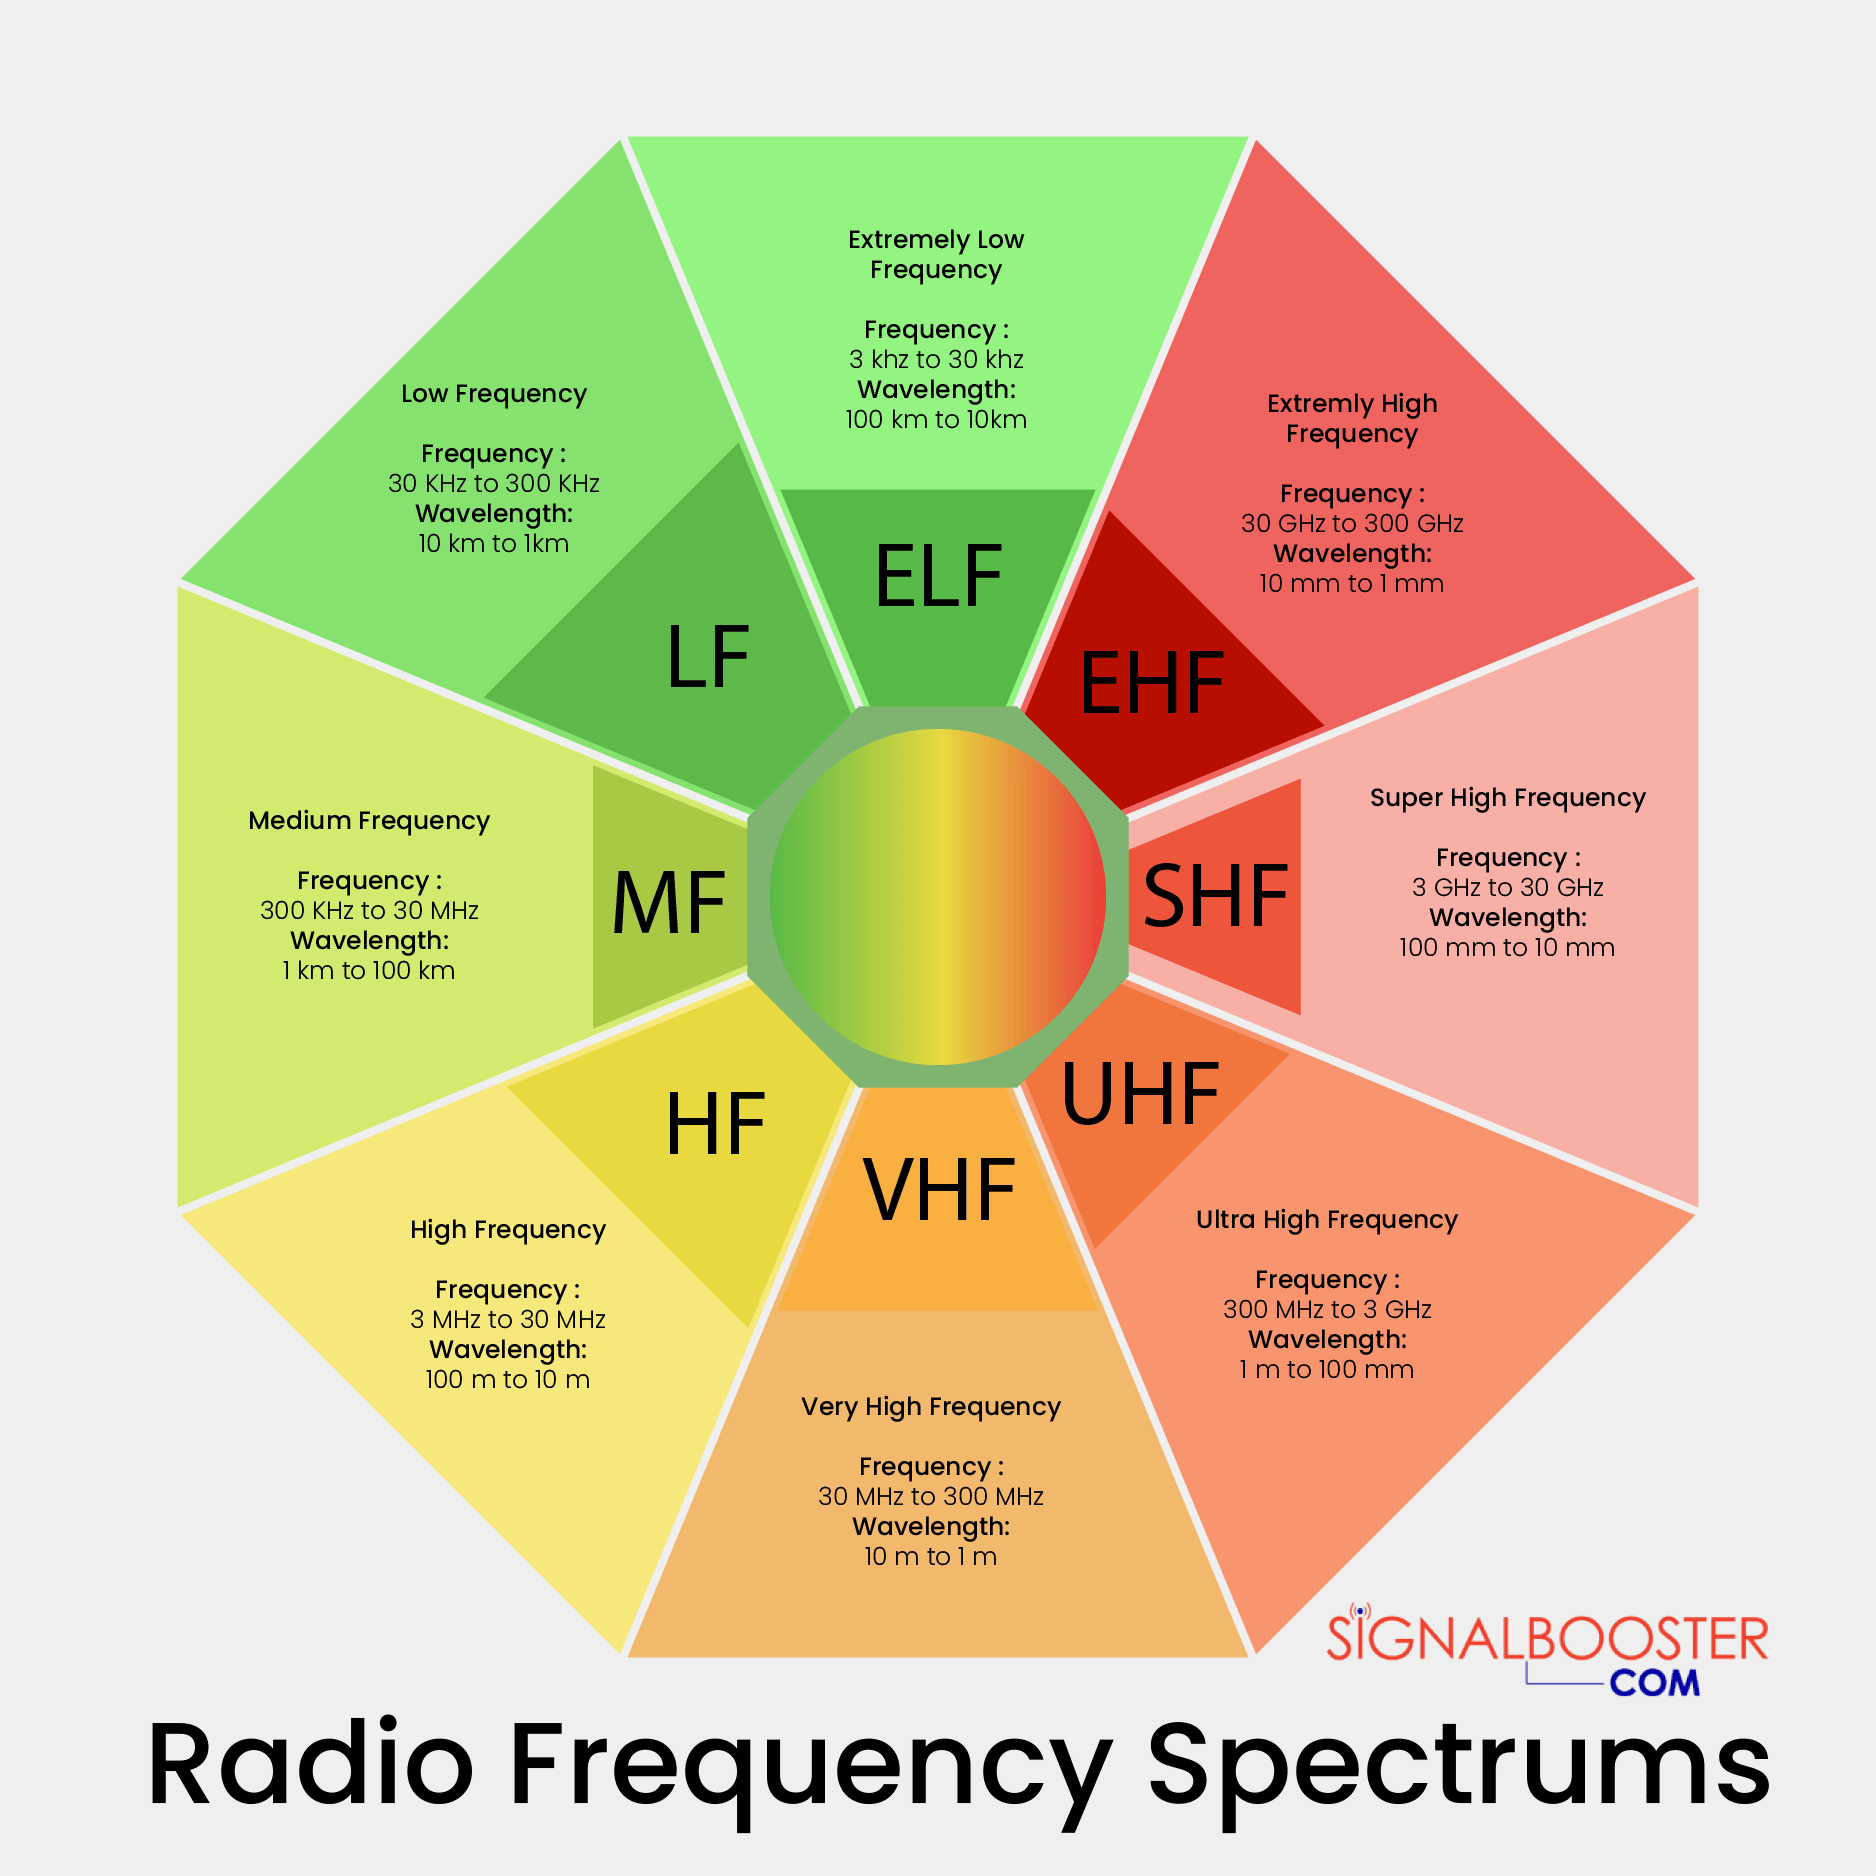 Types of Frequencies and Wavelengths in the Radio Frequency Spectrum